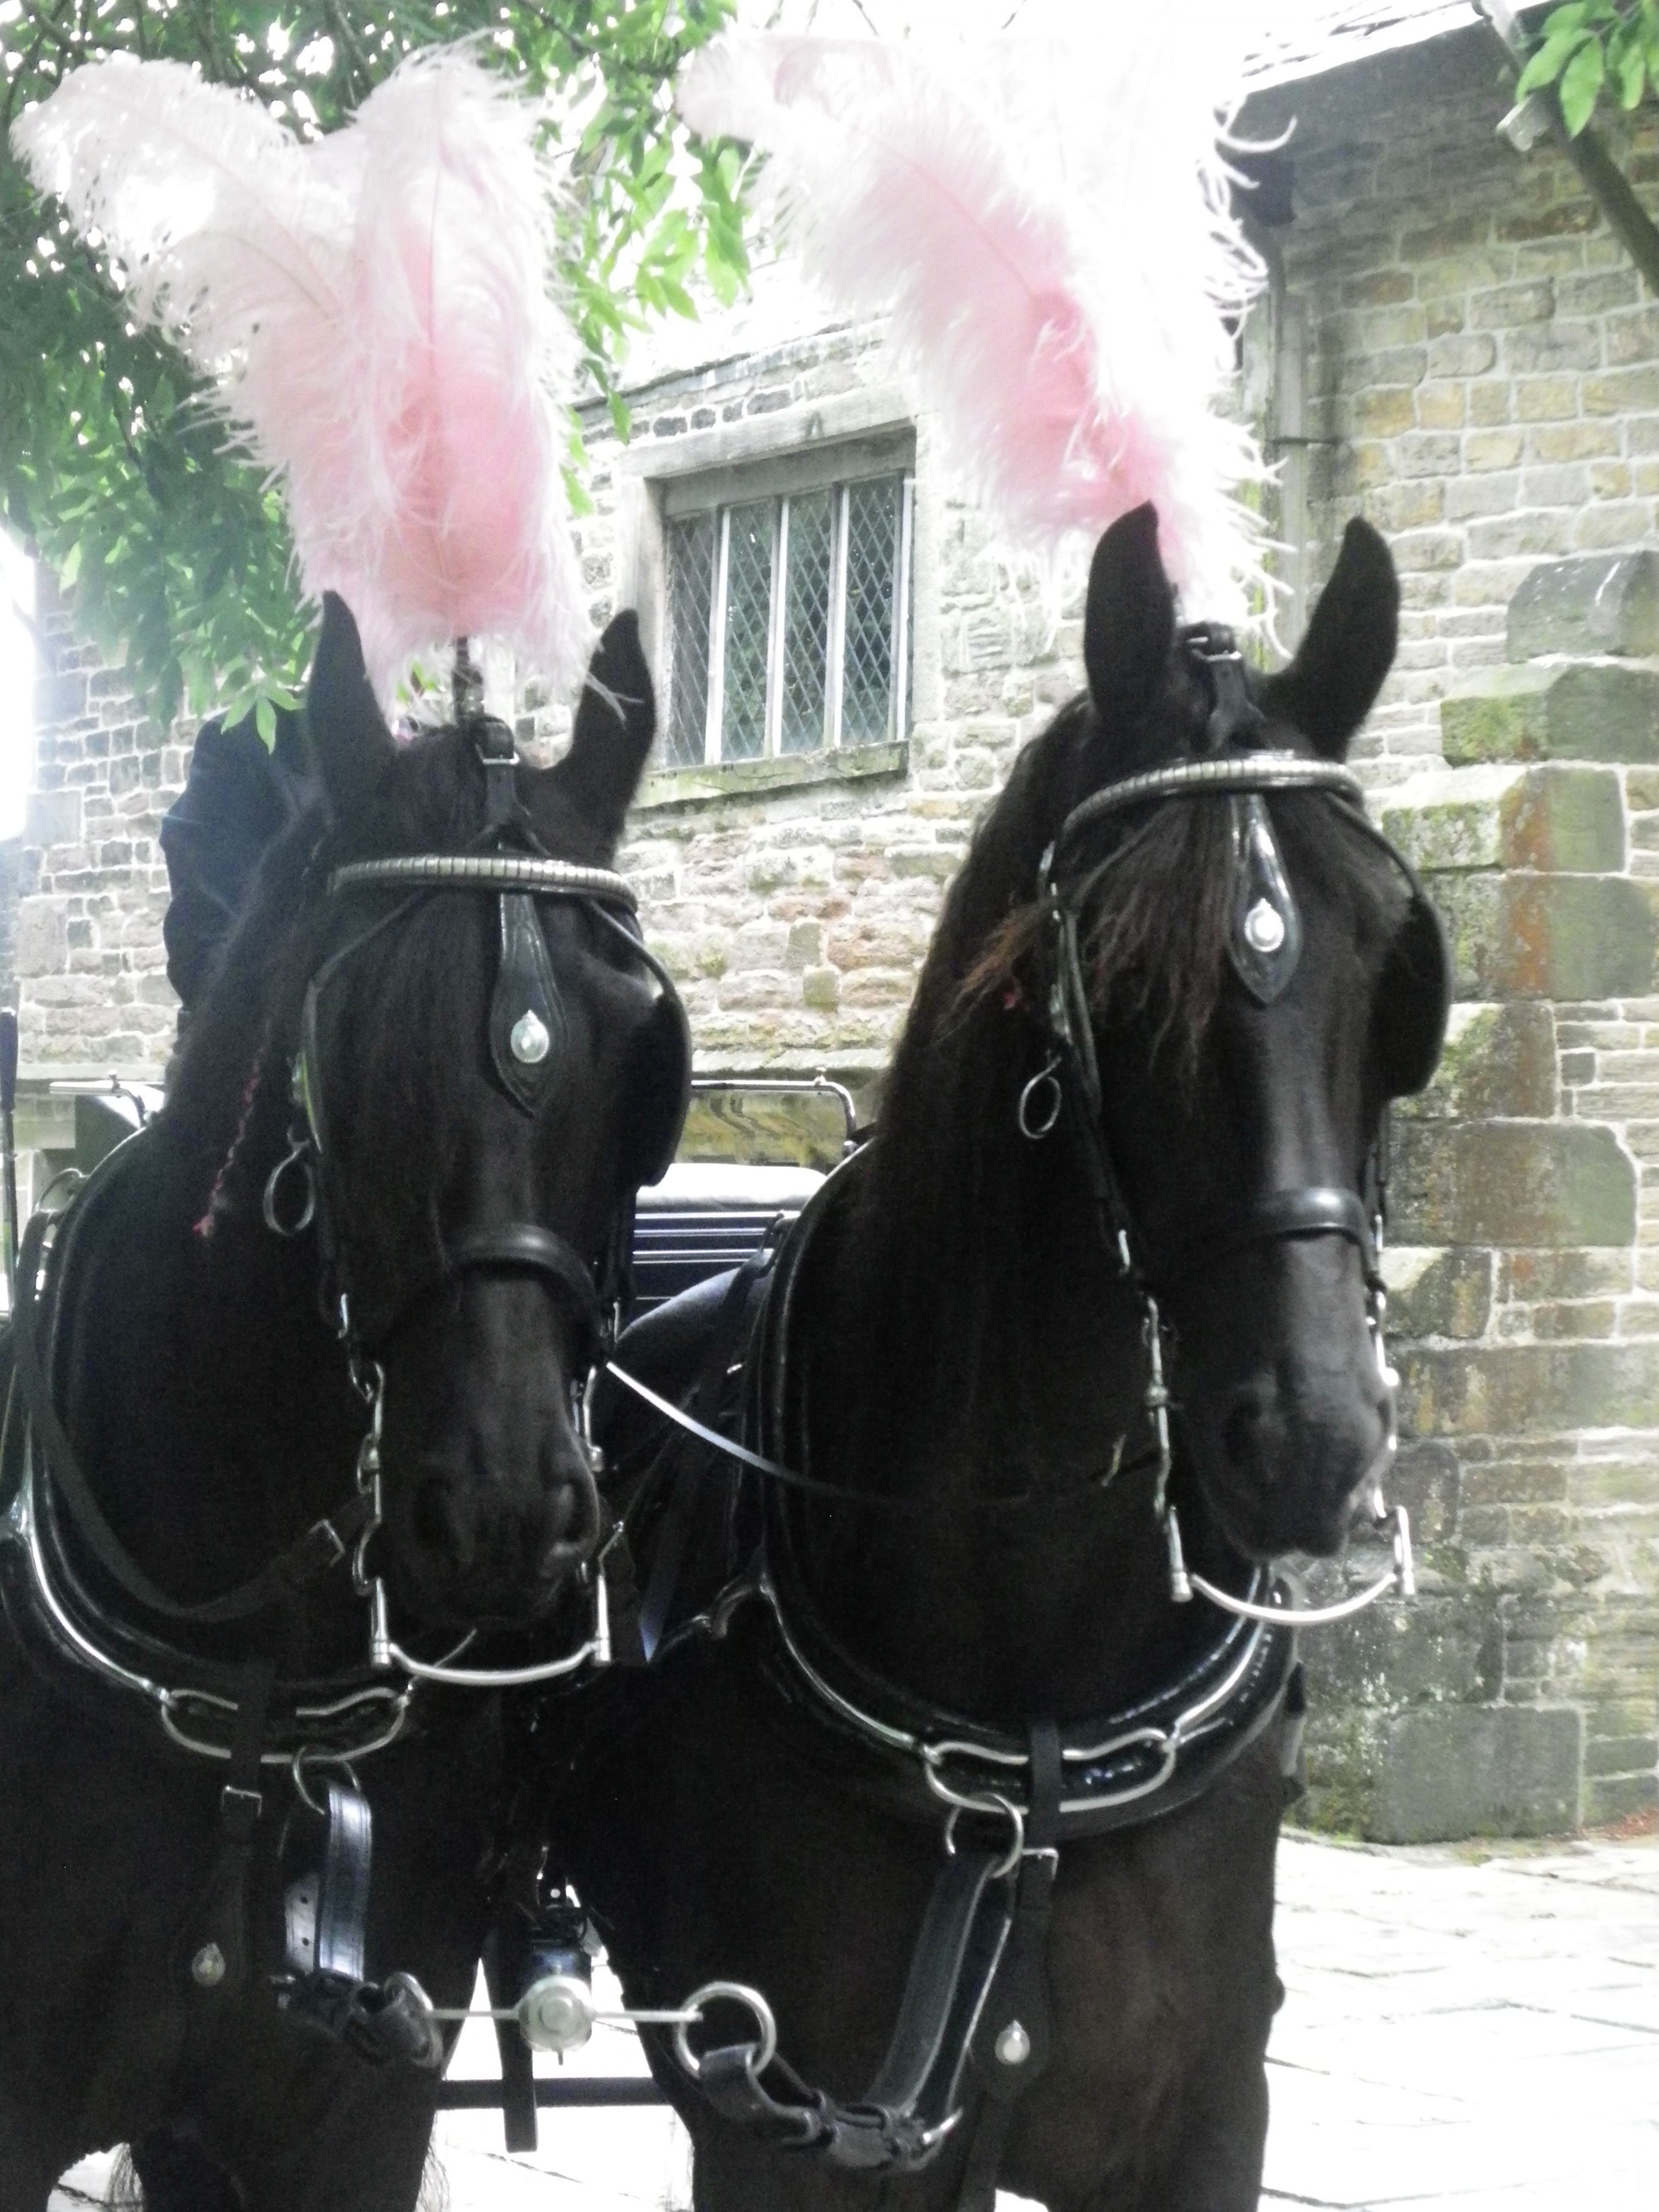 pair of black horses with baby pink plumes on a horse drawn funeral